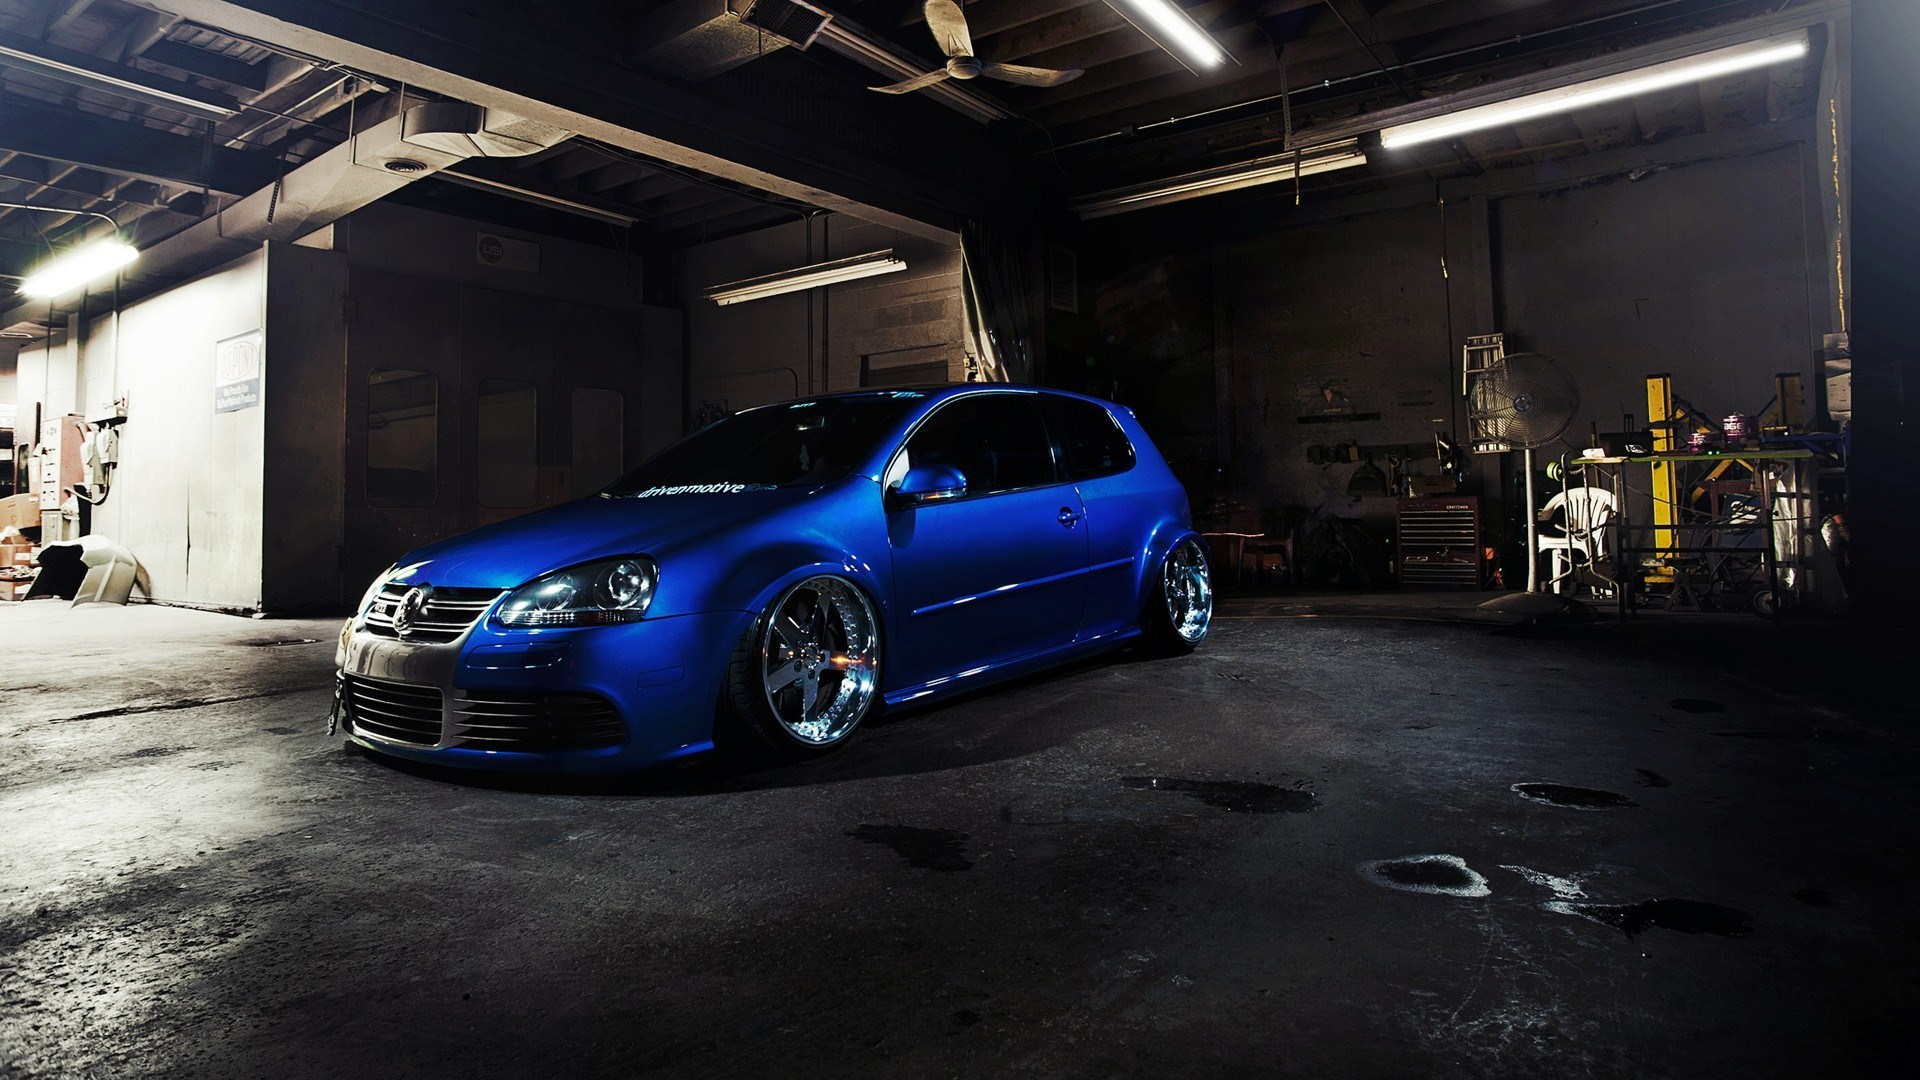 VW R32 Wallpaper WallpaperSafari